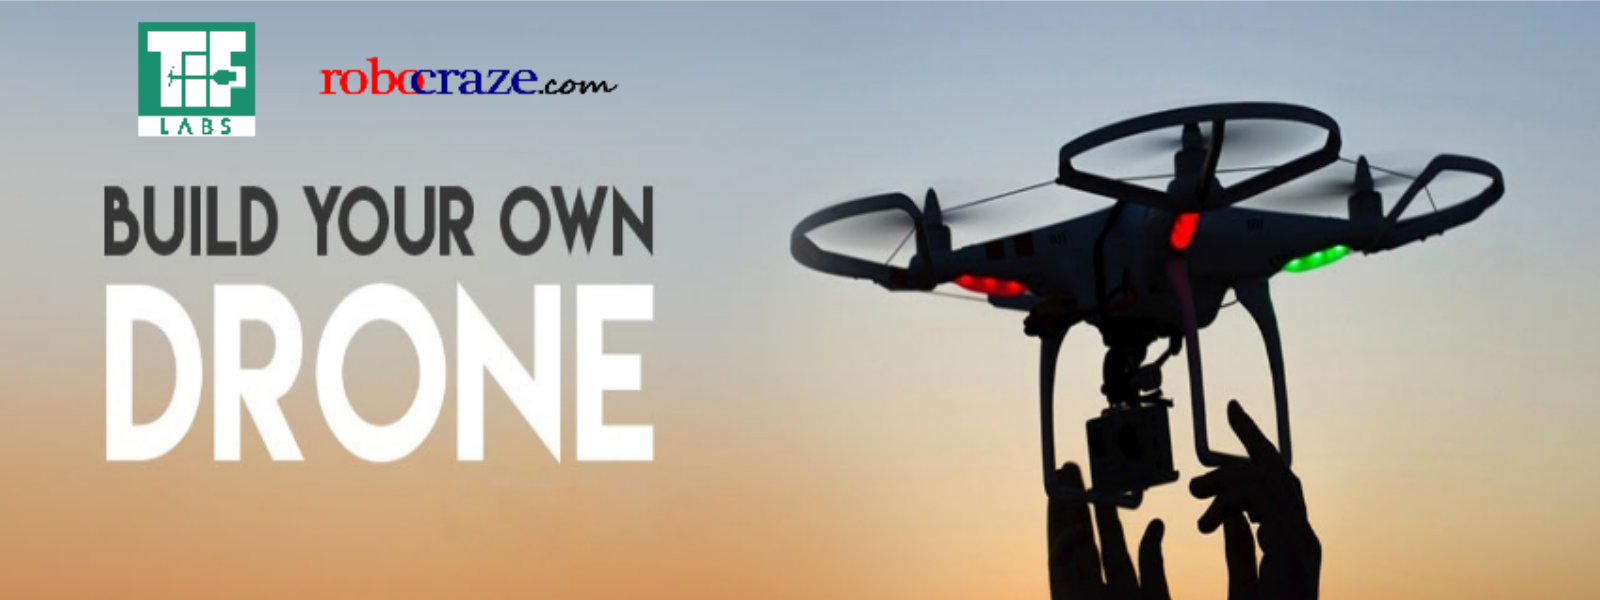 Build Your Own Drone